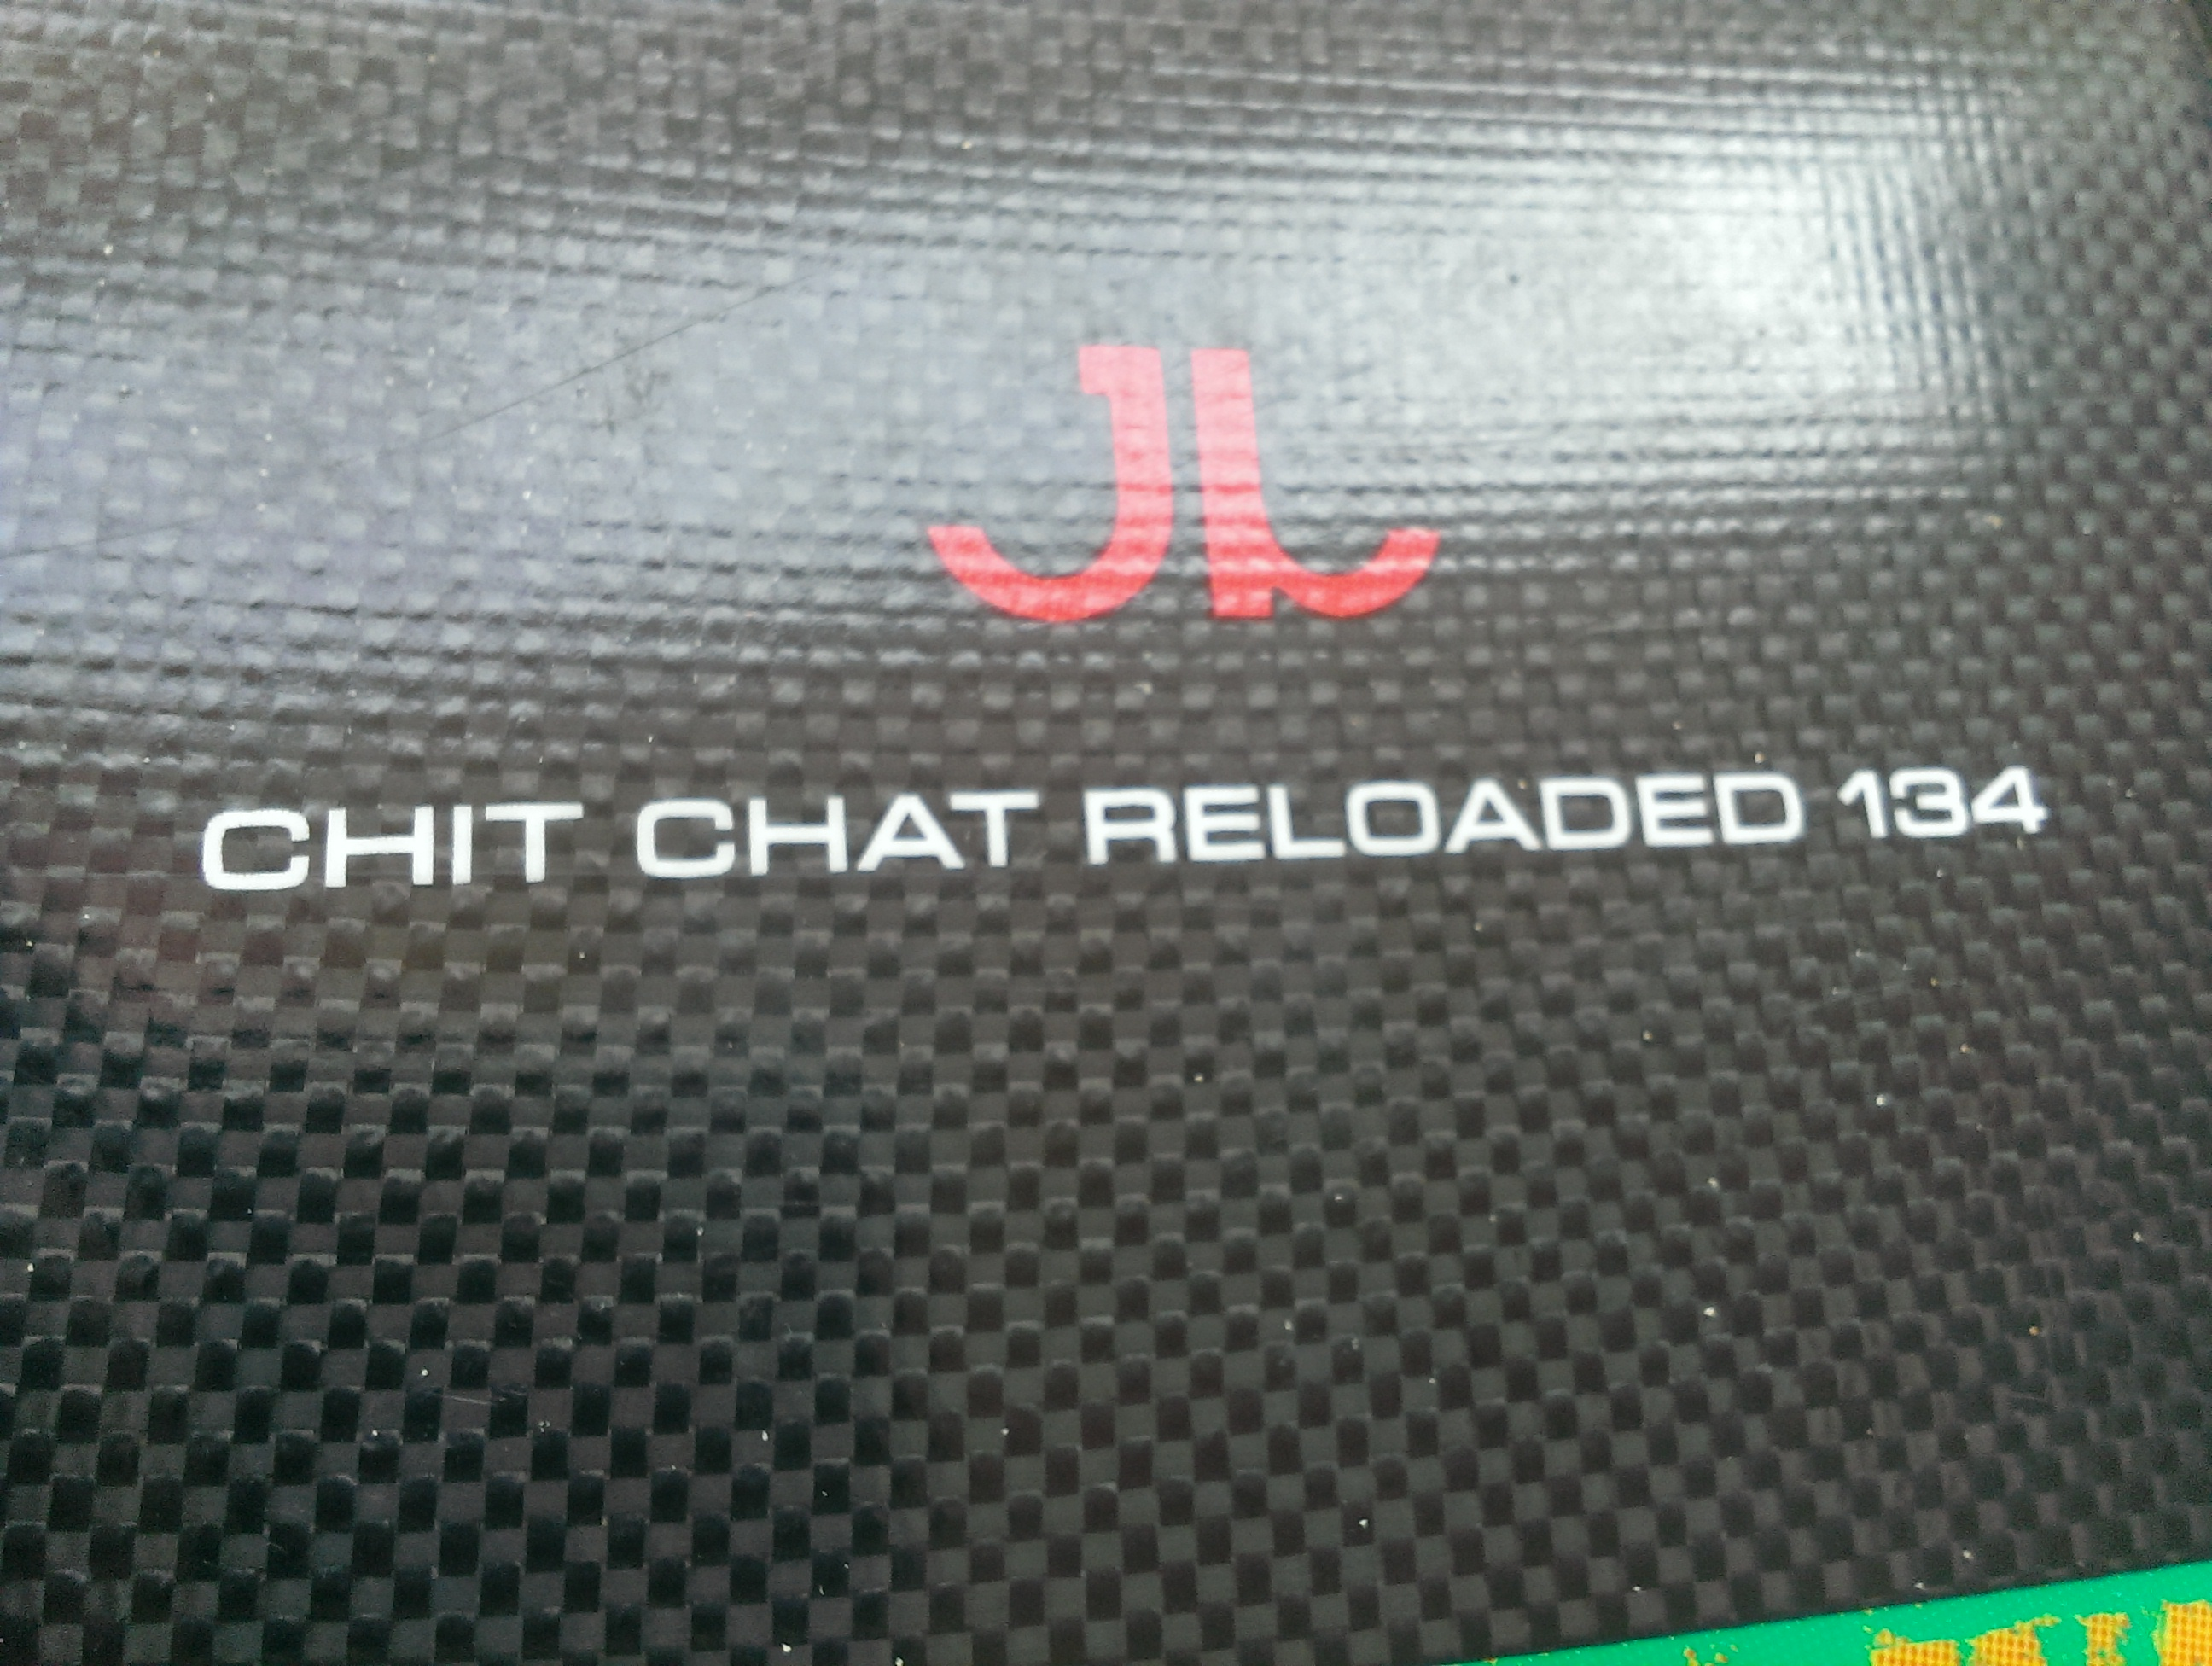 JN Chit Chat reloaded